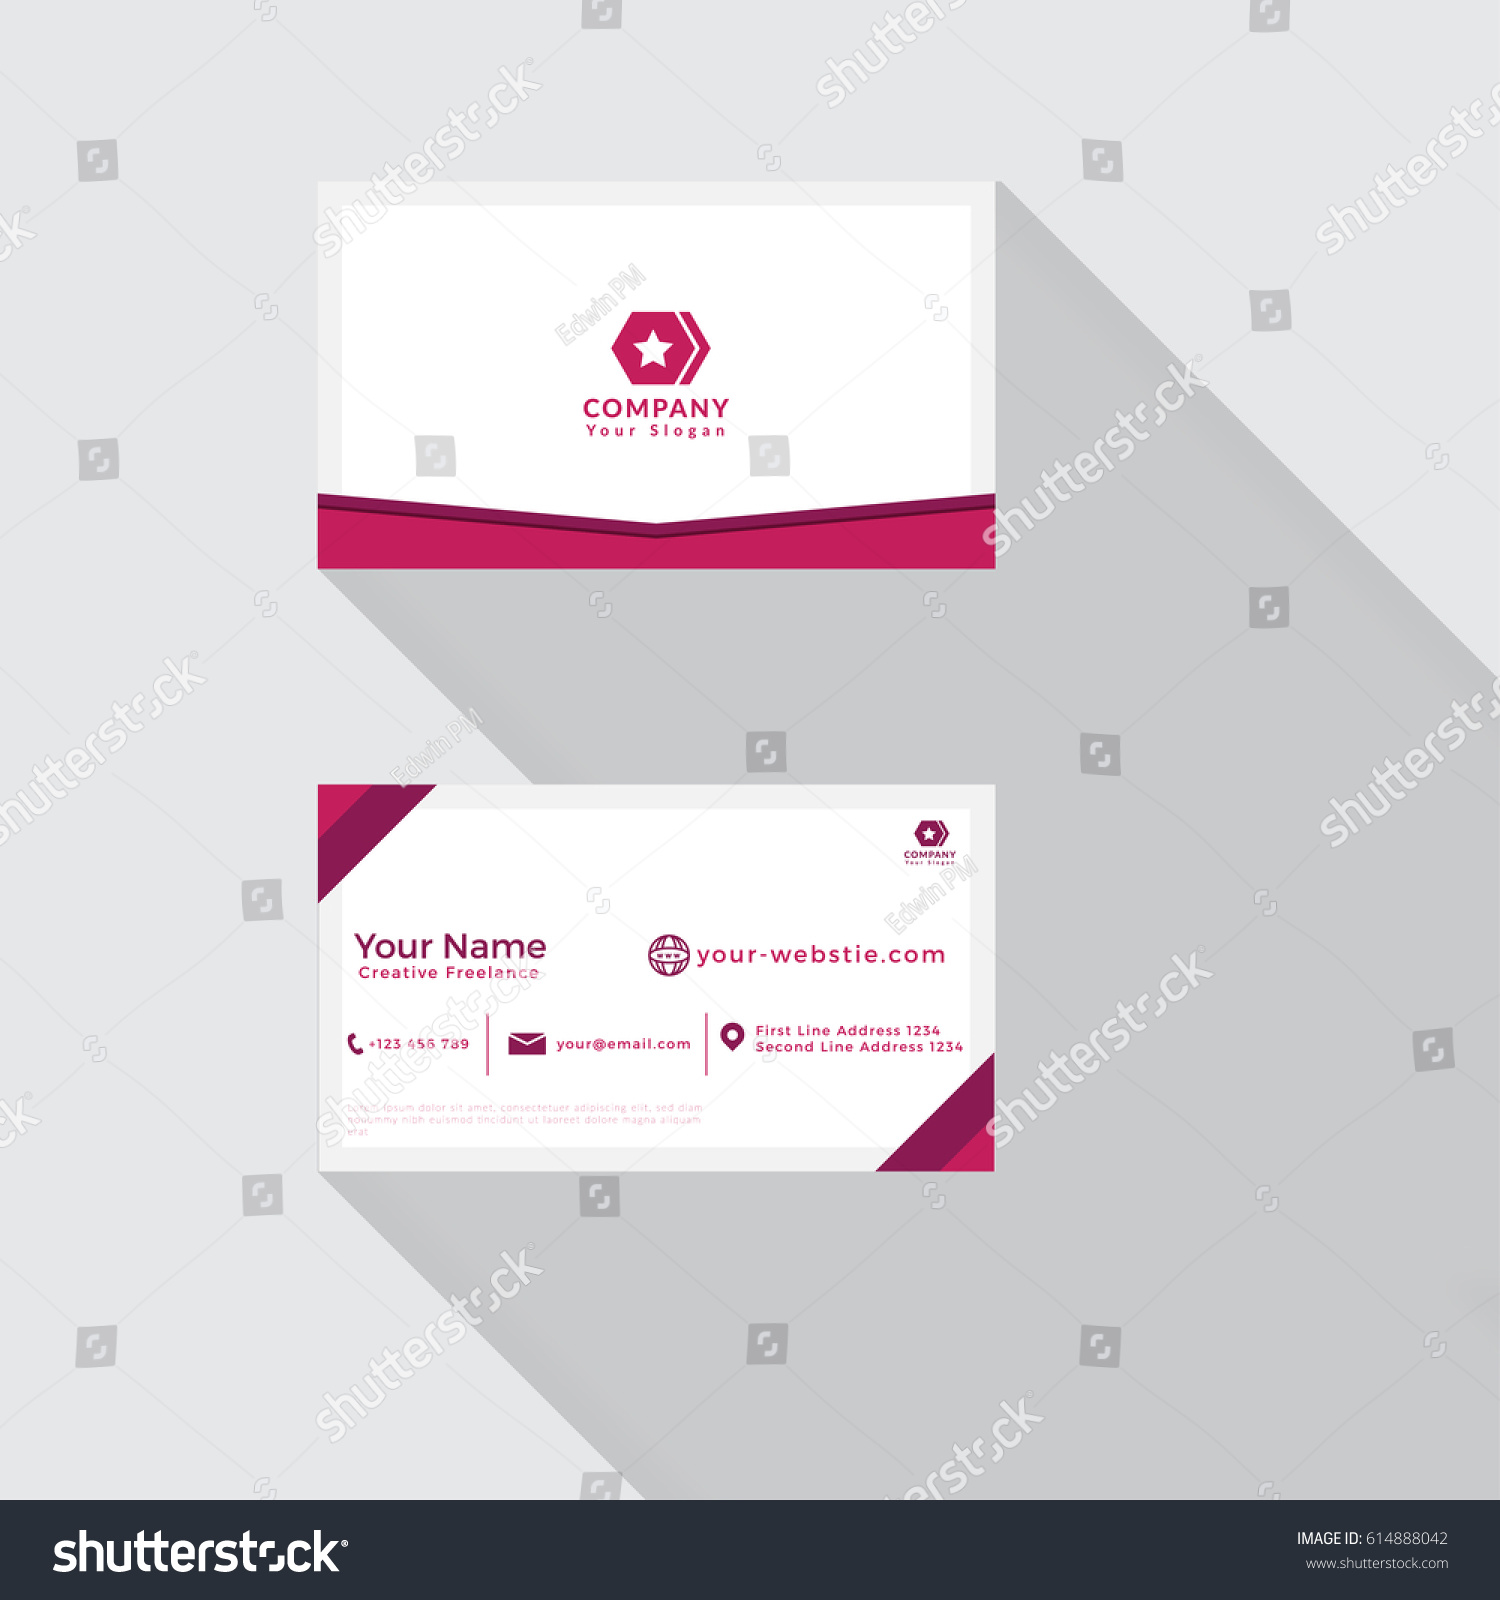 Simple Professional Business Card Template Pink Stock Vector ...